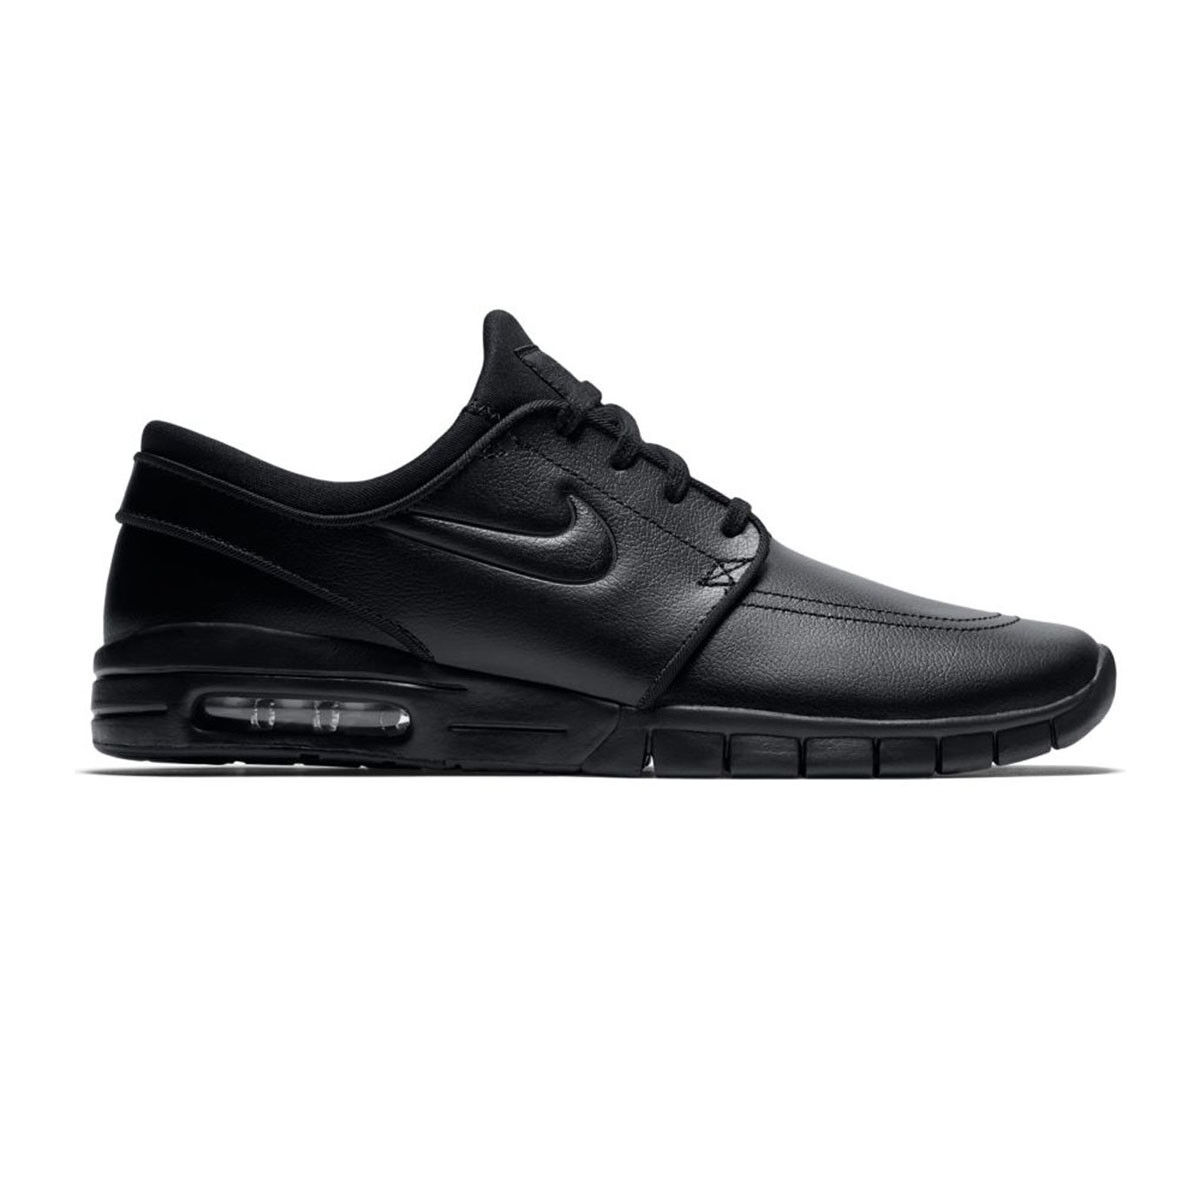 Nike SB Stefan Janoski Max Leather (Black) 685299-009 Size 8 UK